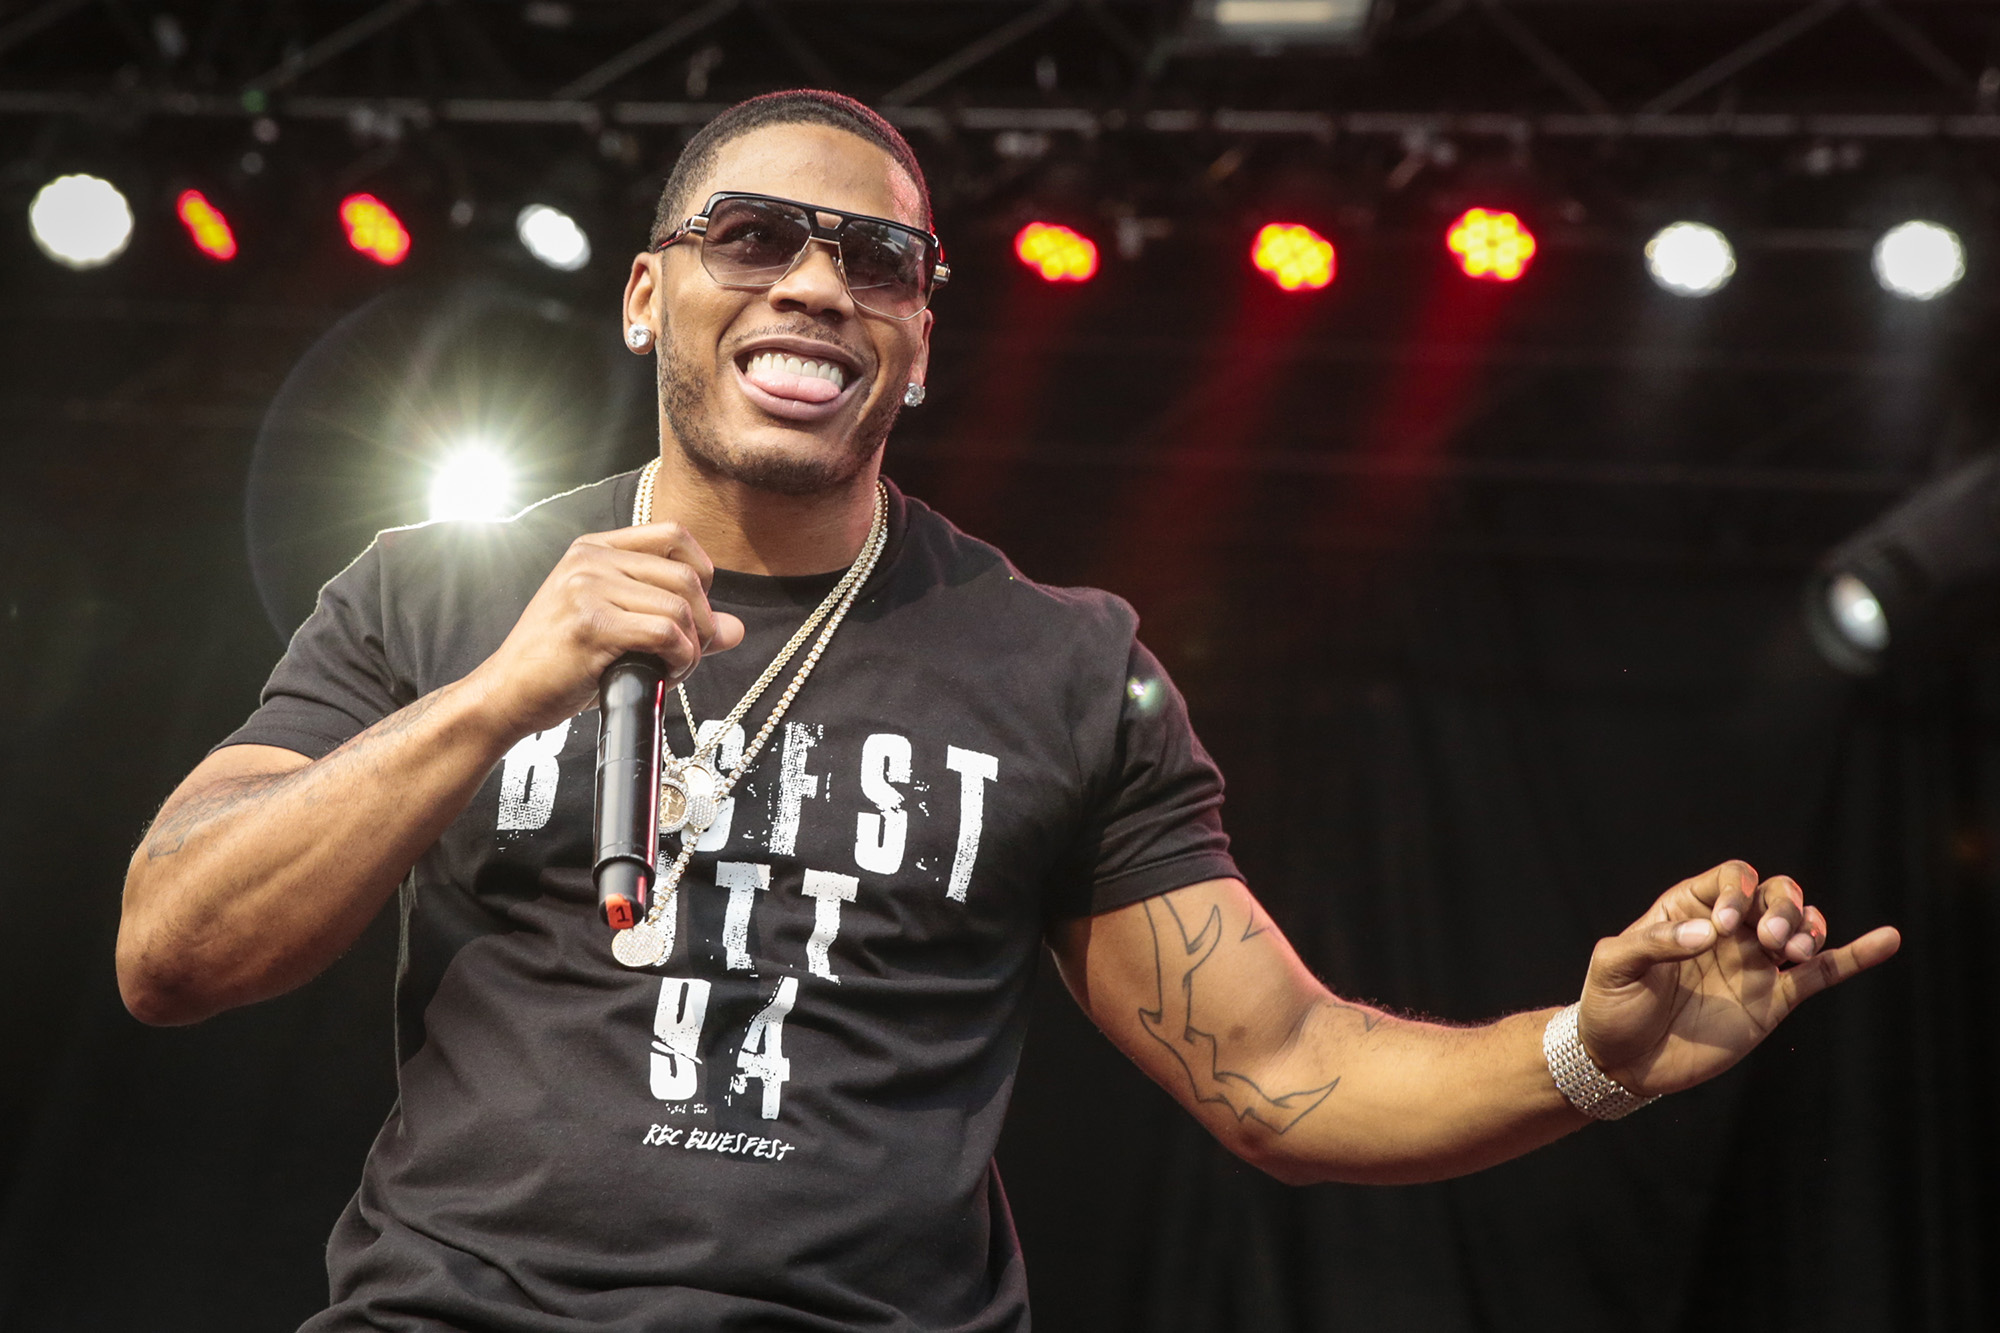 Nelly performs on Day 8 of the RBC Bluesfest on July 16, 2016 in Ottawa, Canada.  (Photo by Mark Horton/Getty Images)